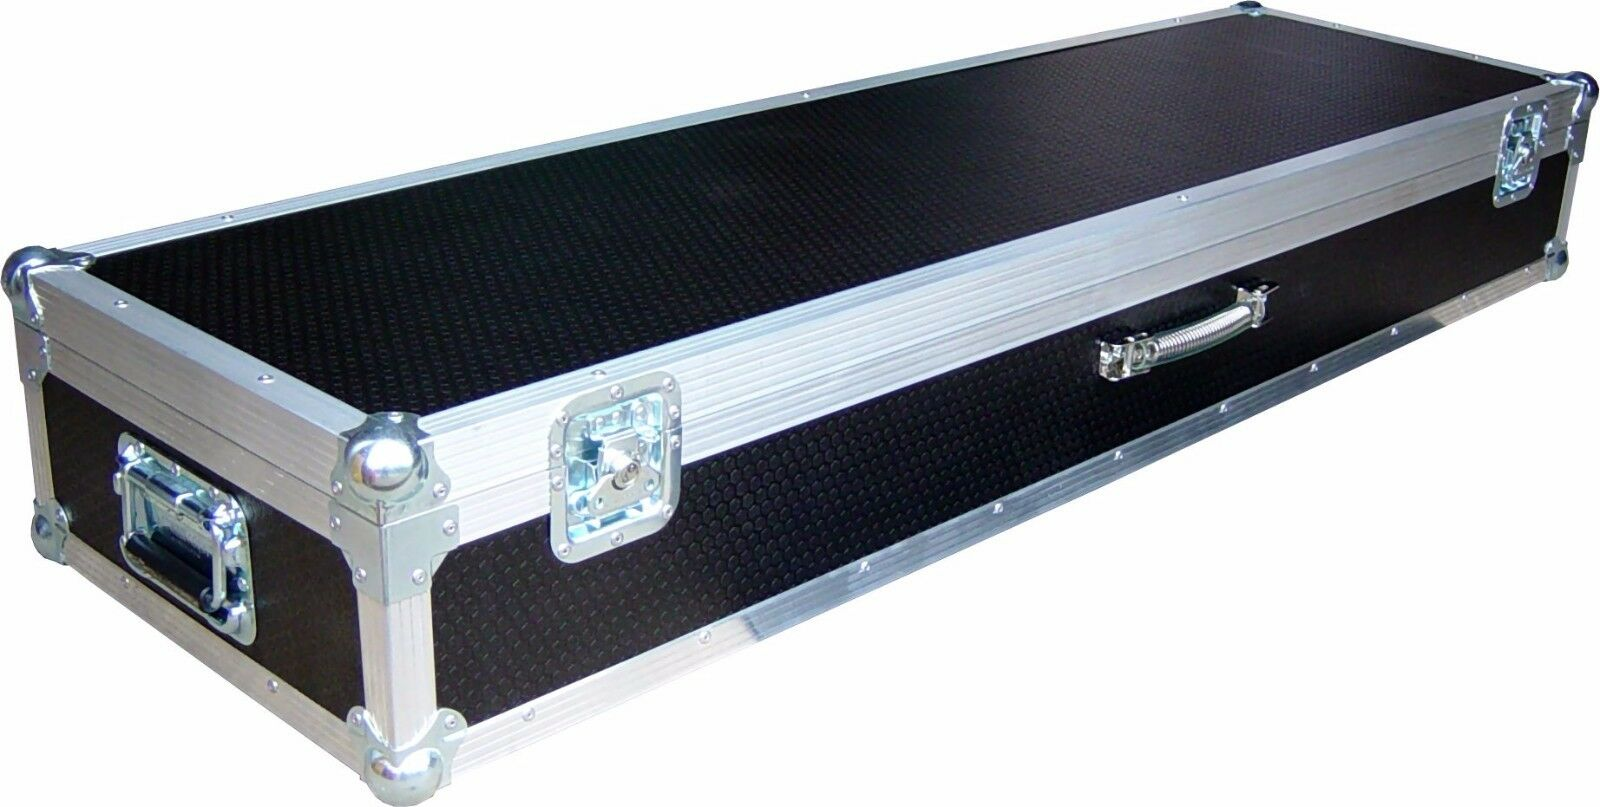 Alesis Andromeda A6 Keyboard Piano Swan Flight Case